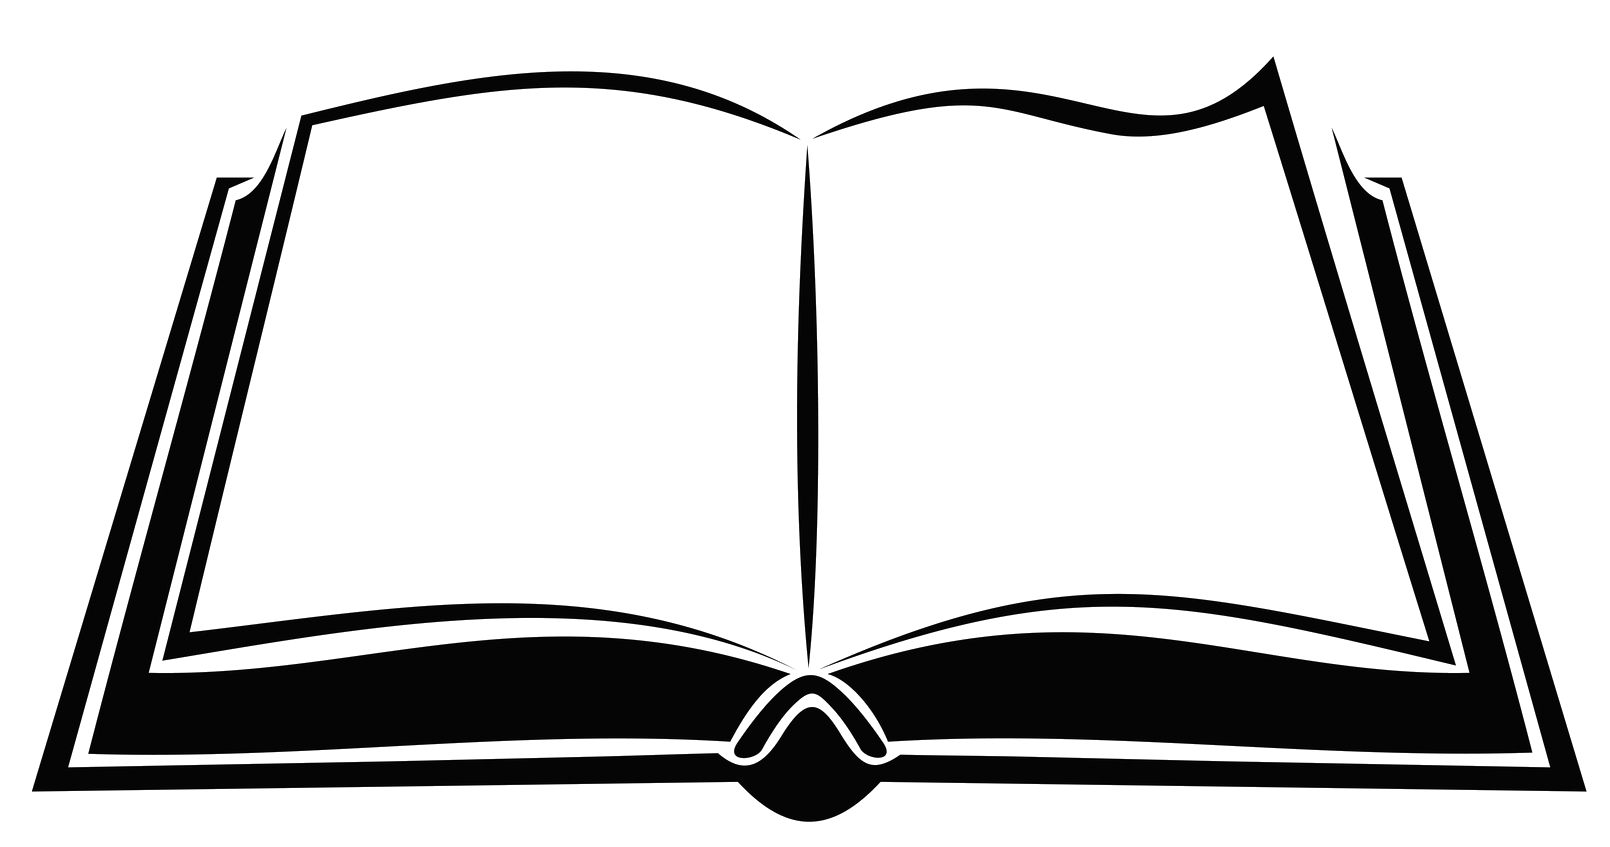 Open book silhouette png. Royalty free clip art